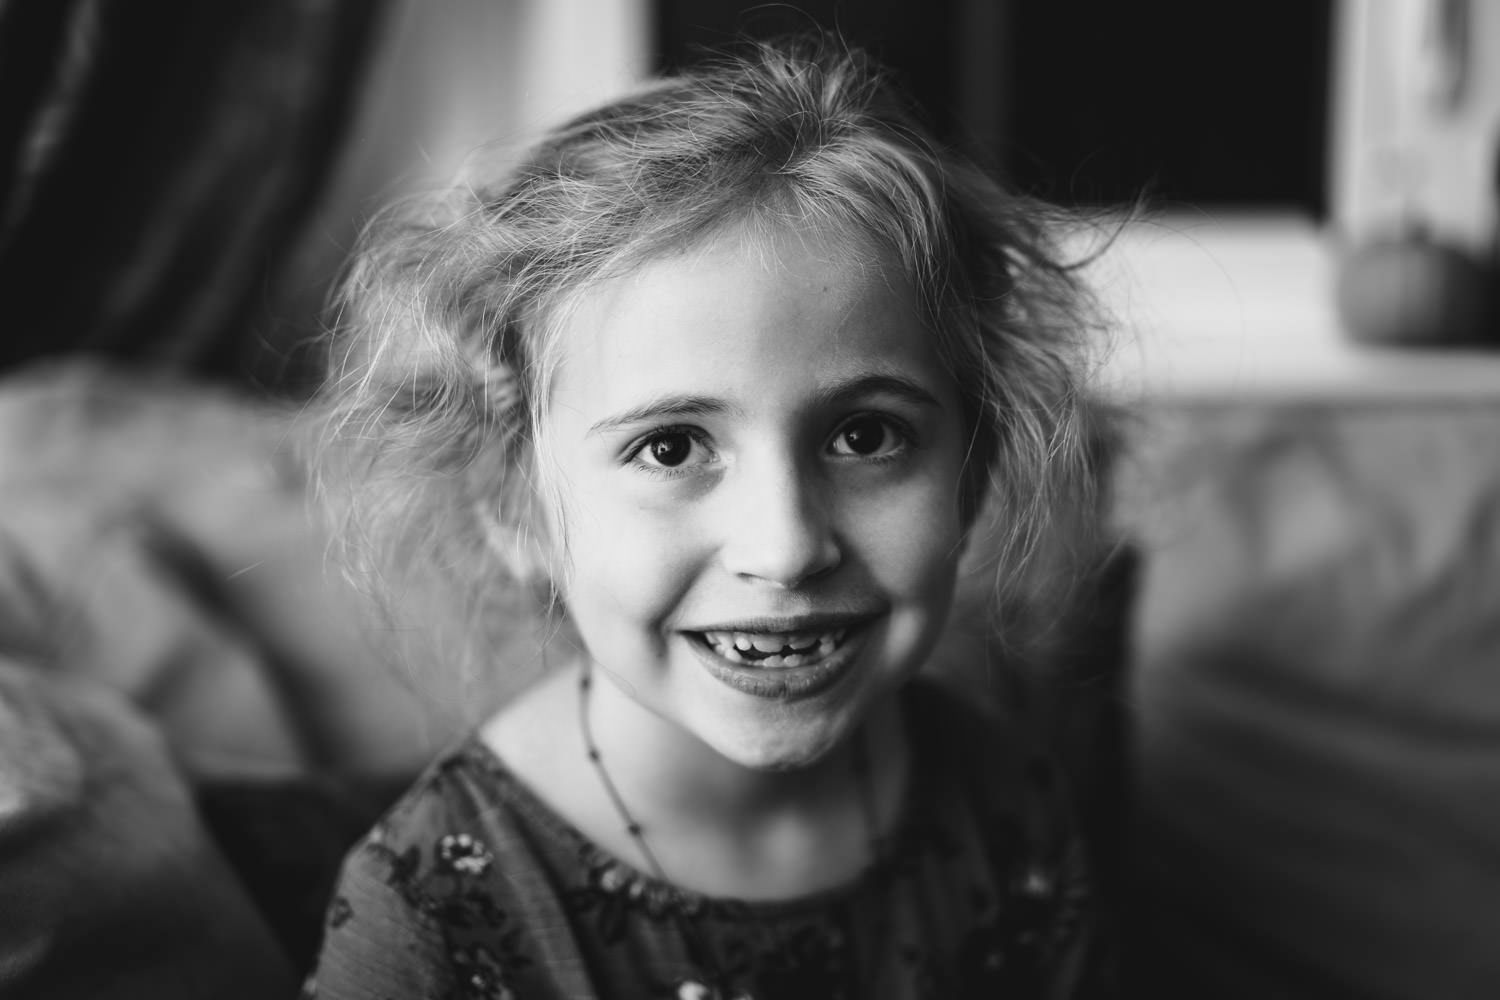 A little girl smiles at the camera.